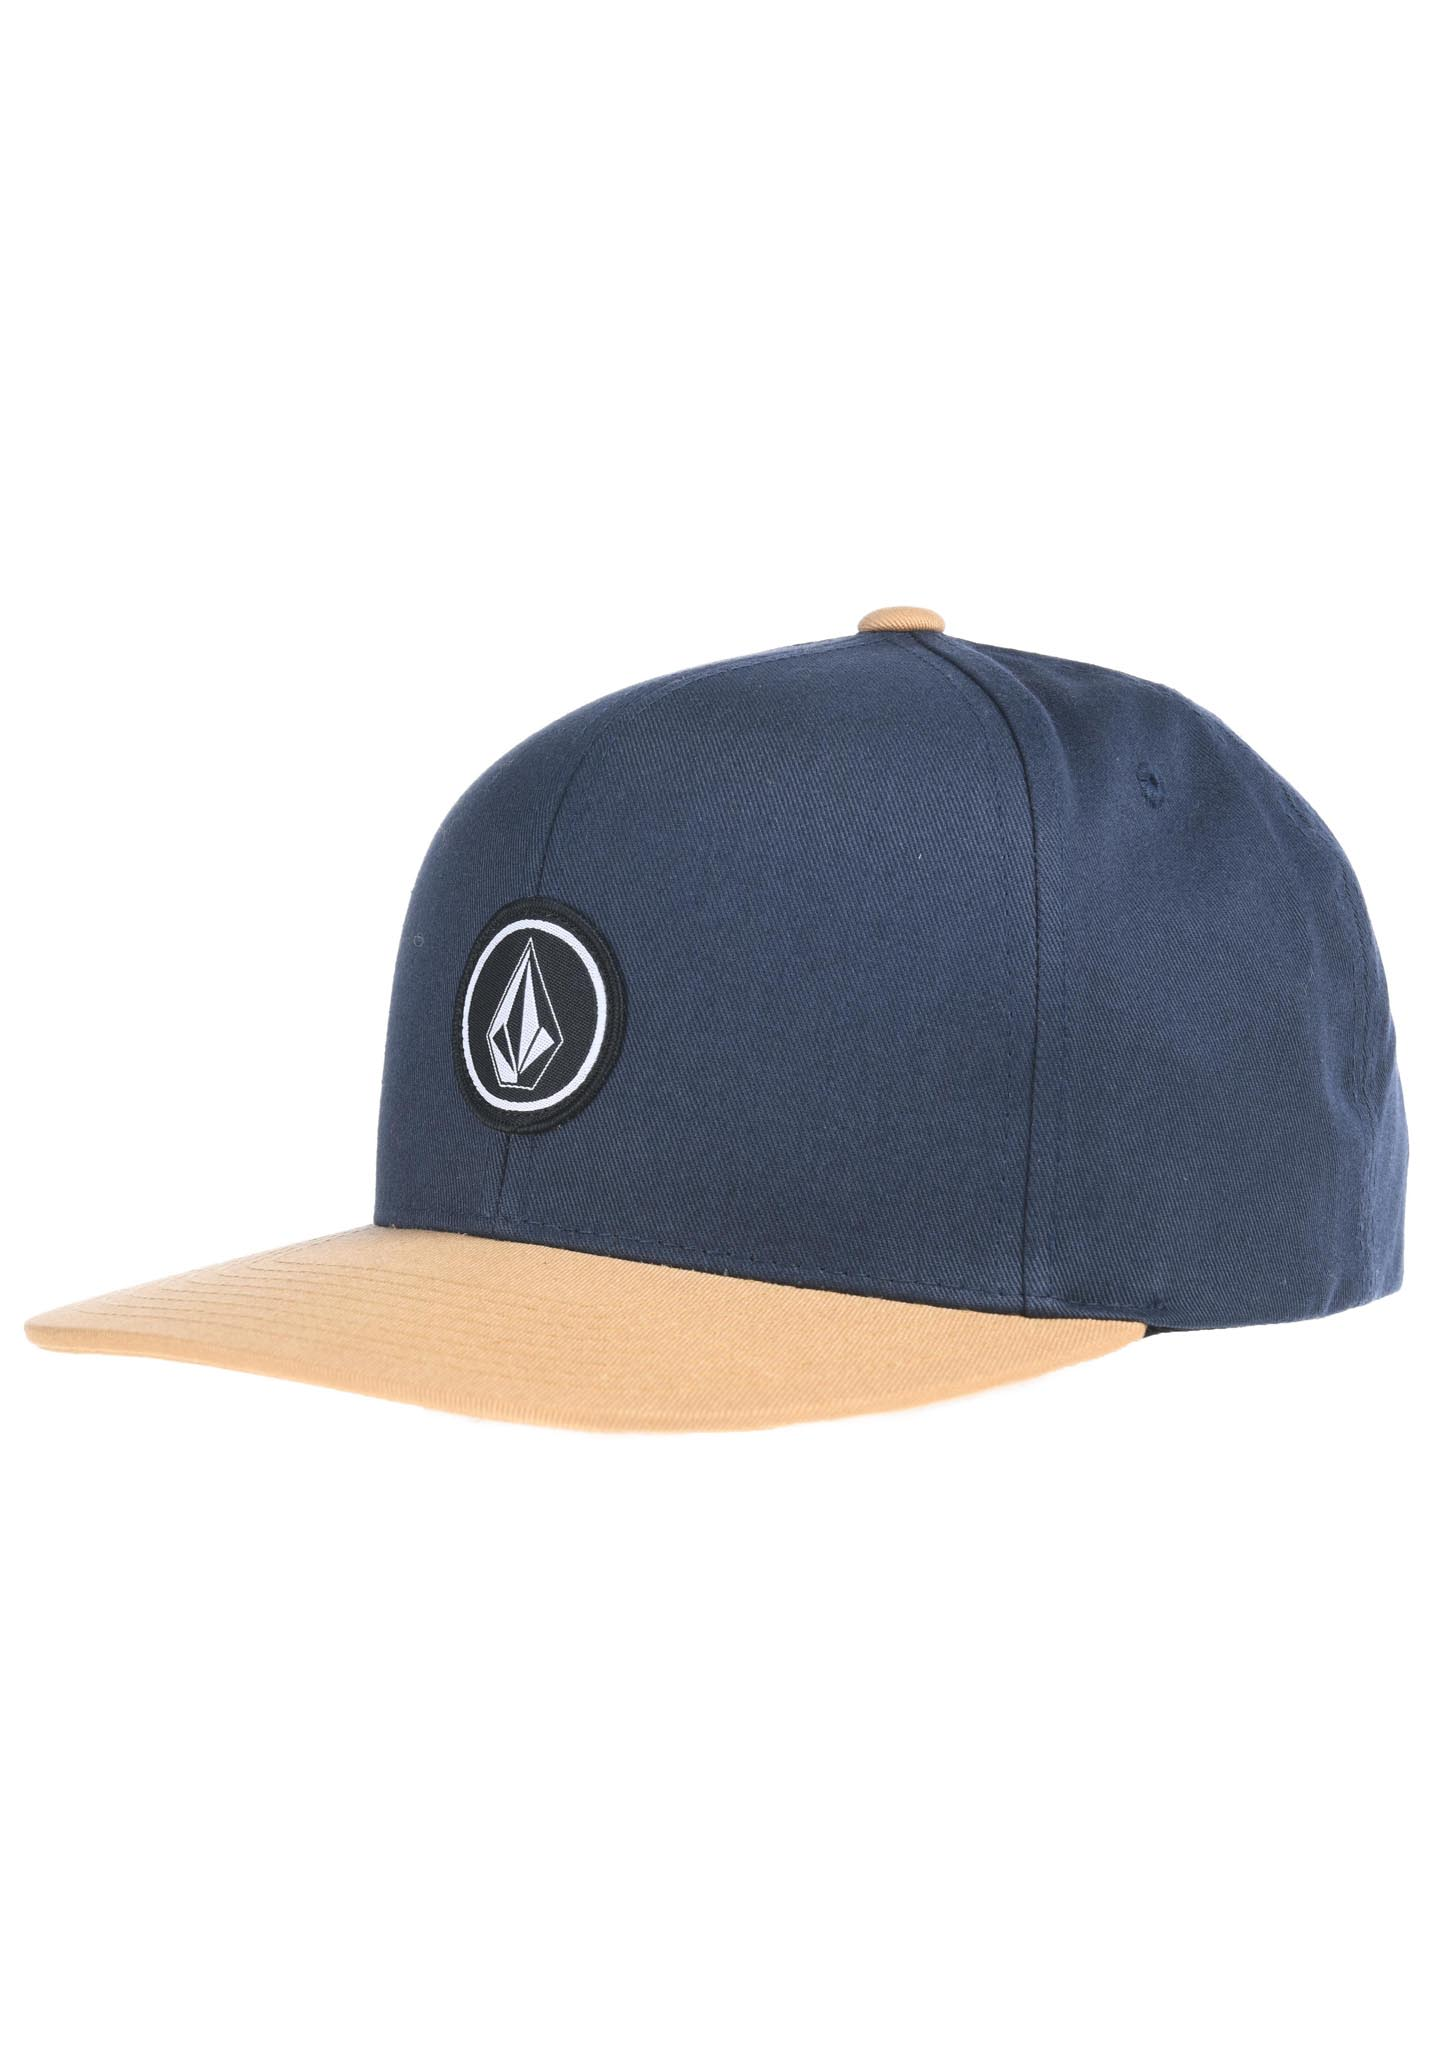 580d459f986d39 Volcom Quarter Twill - Snapback Cap for Men - Blue - Planet Sports